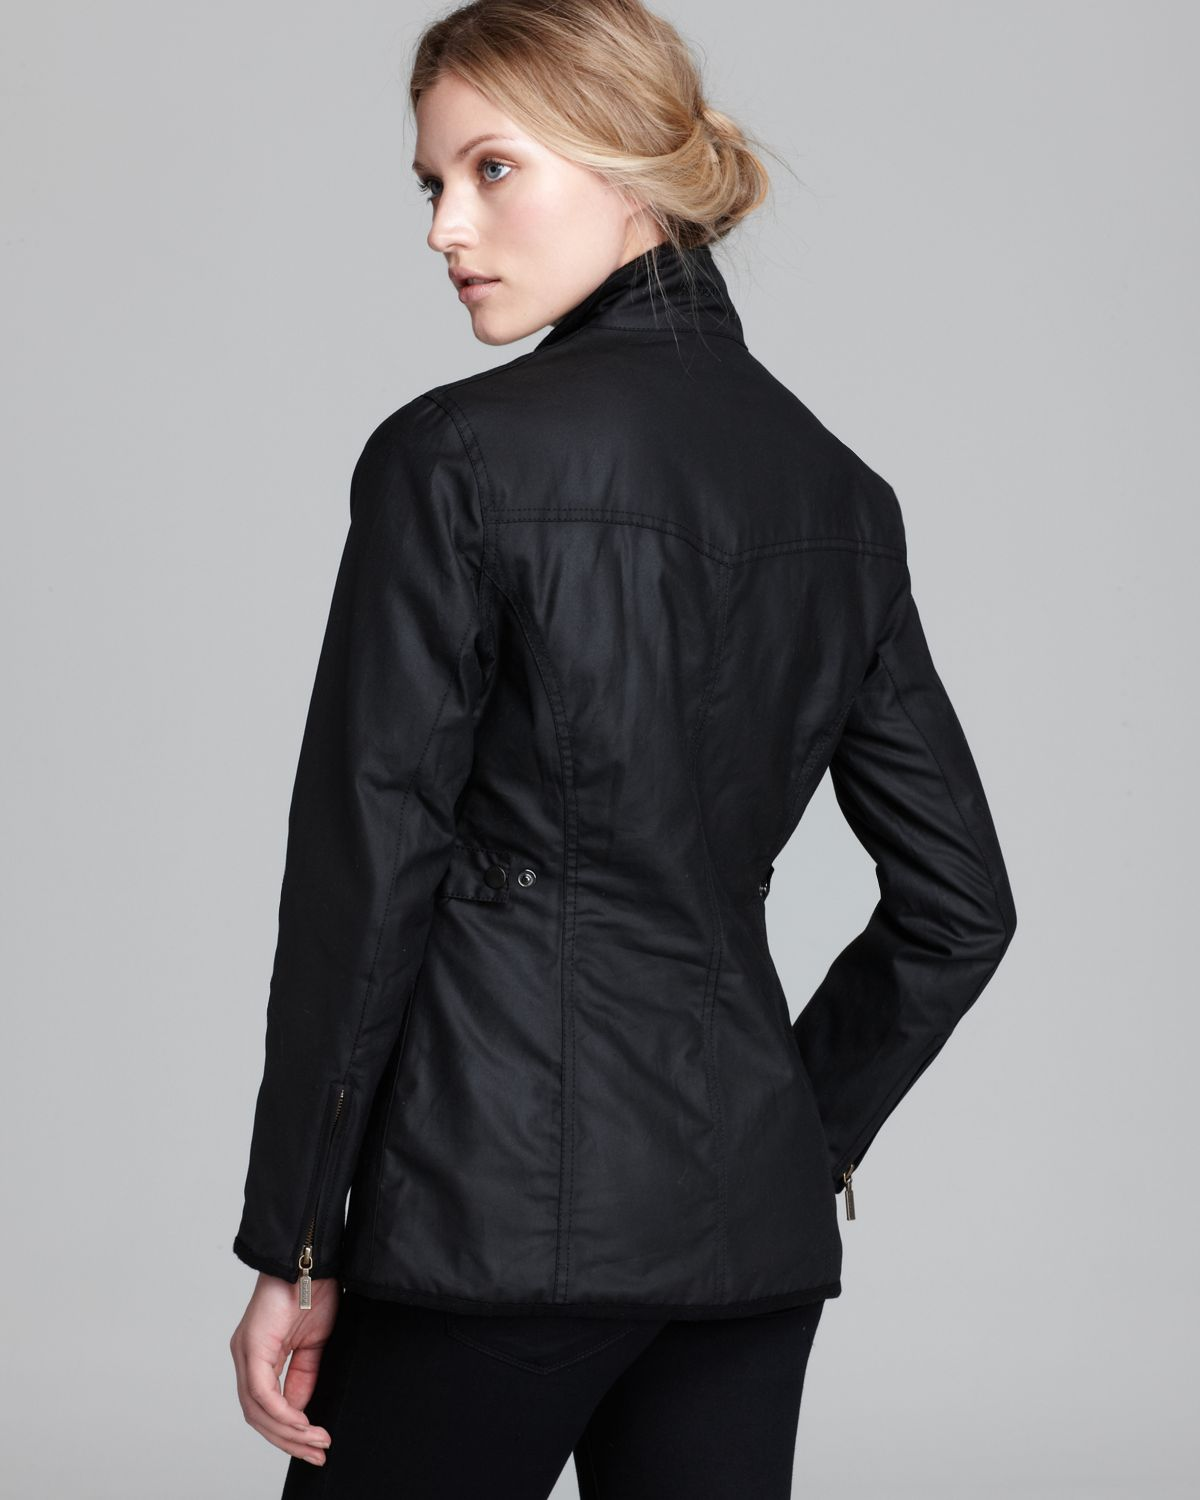 Barbour Jacket Utility Lightweight Waxed Cotton In Black